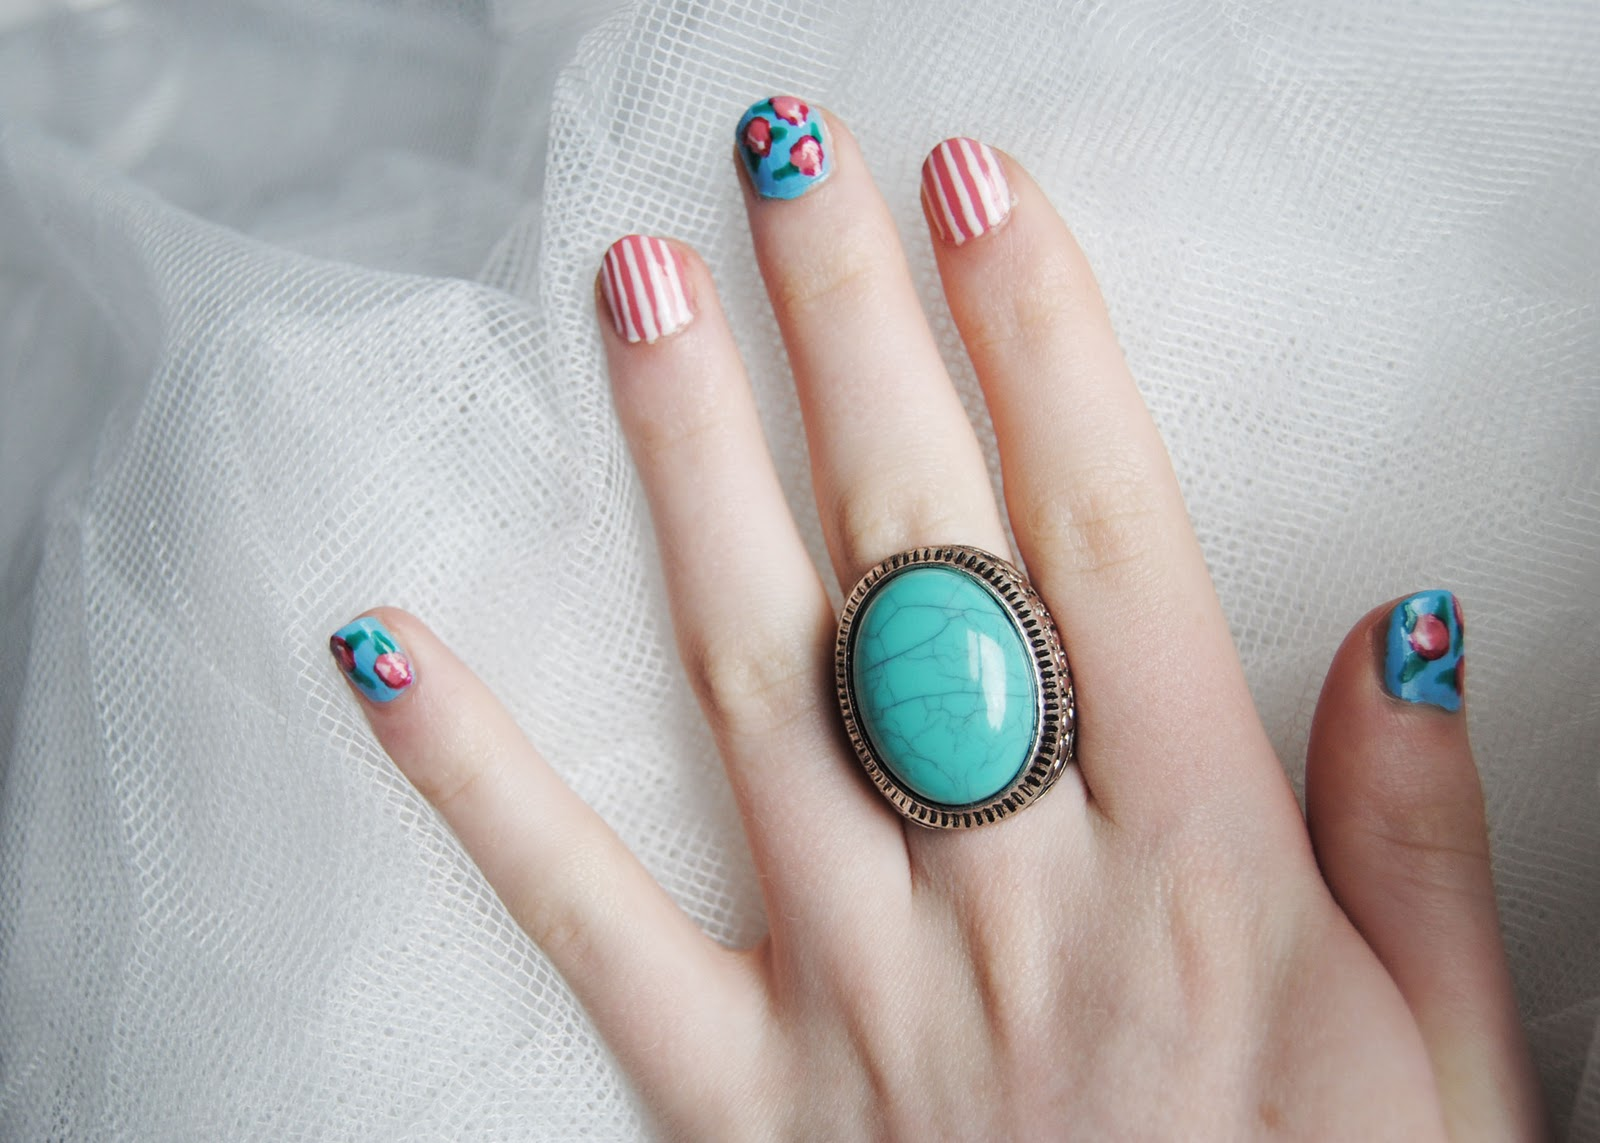 Vintage floral nail art tutorial vintage floral nail art on tuesday evening i was browsing ebay for nail prinsesfo Image collections